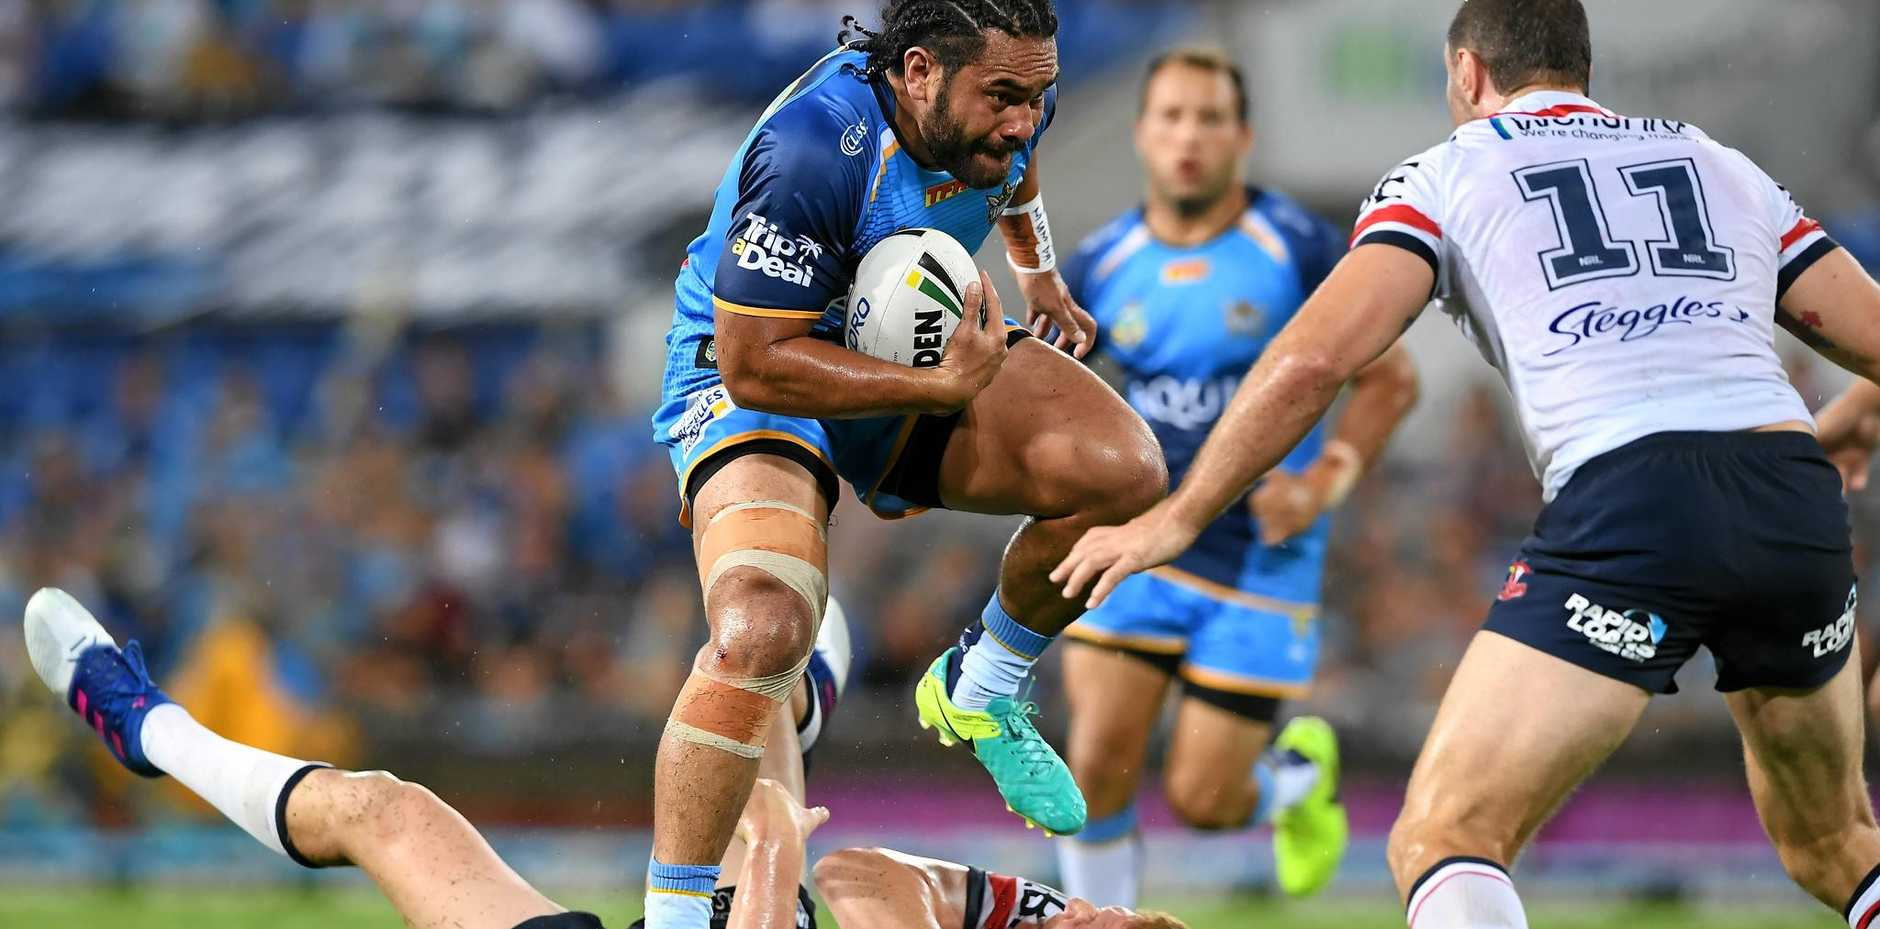 Titans player Konrad Hurrell takes the ball forward against the Sydney Roosters in round one.